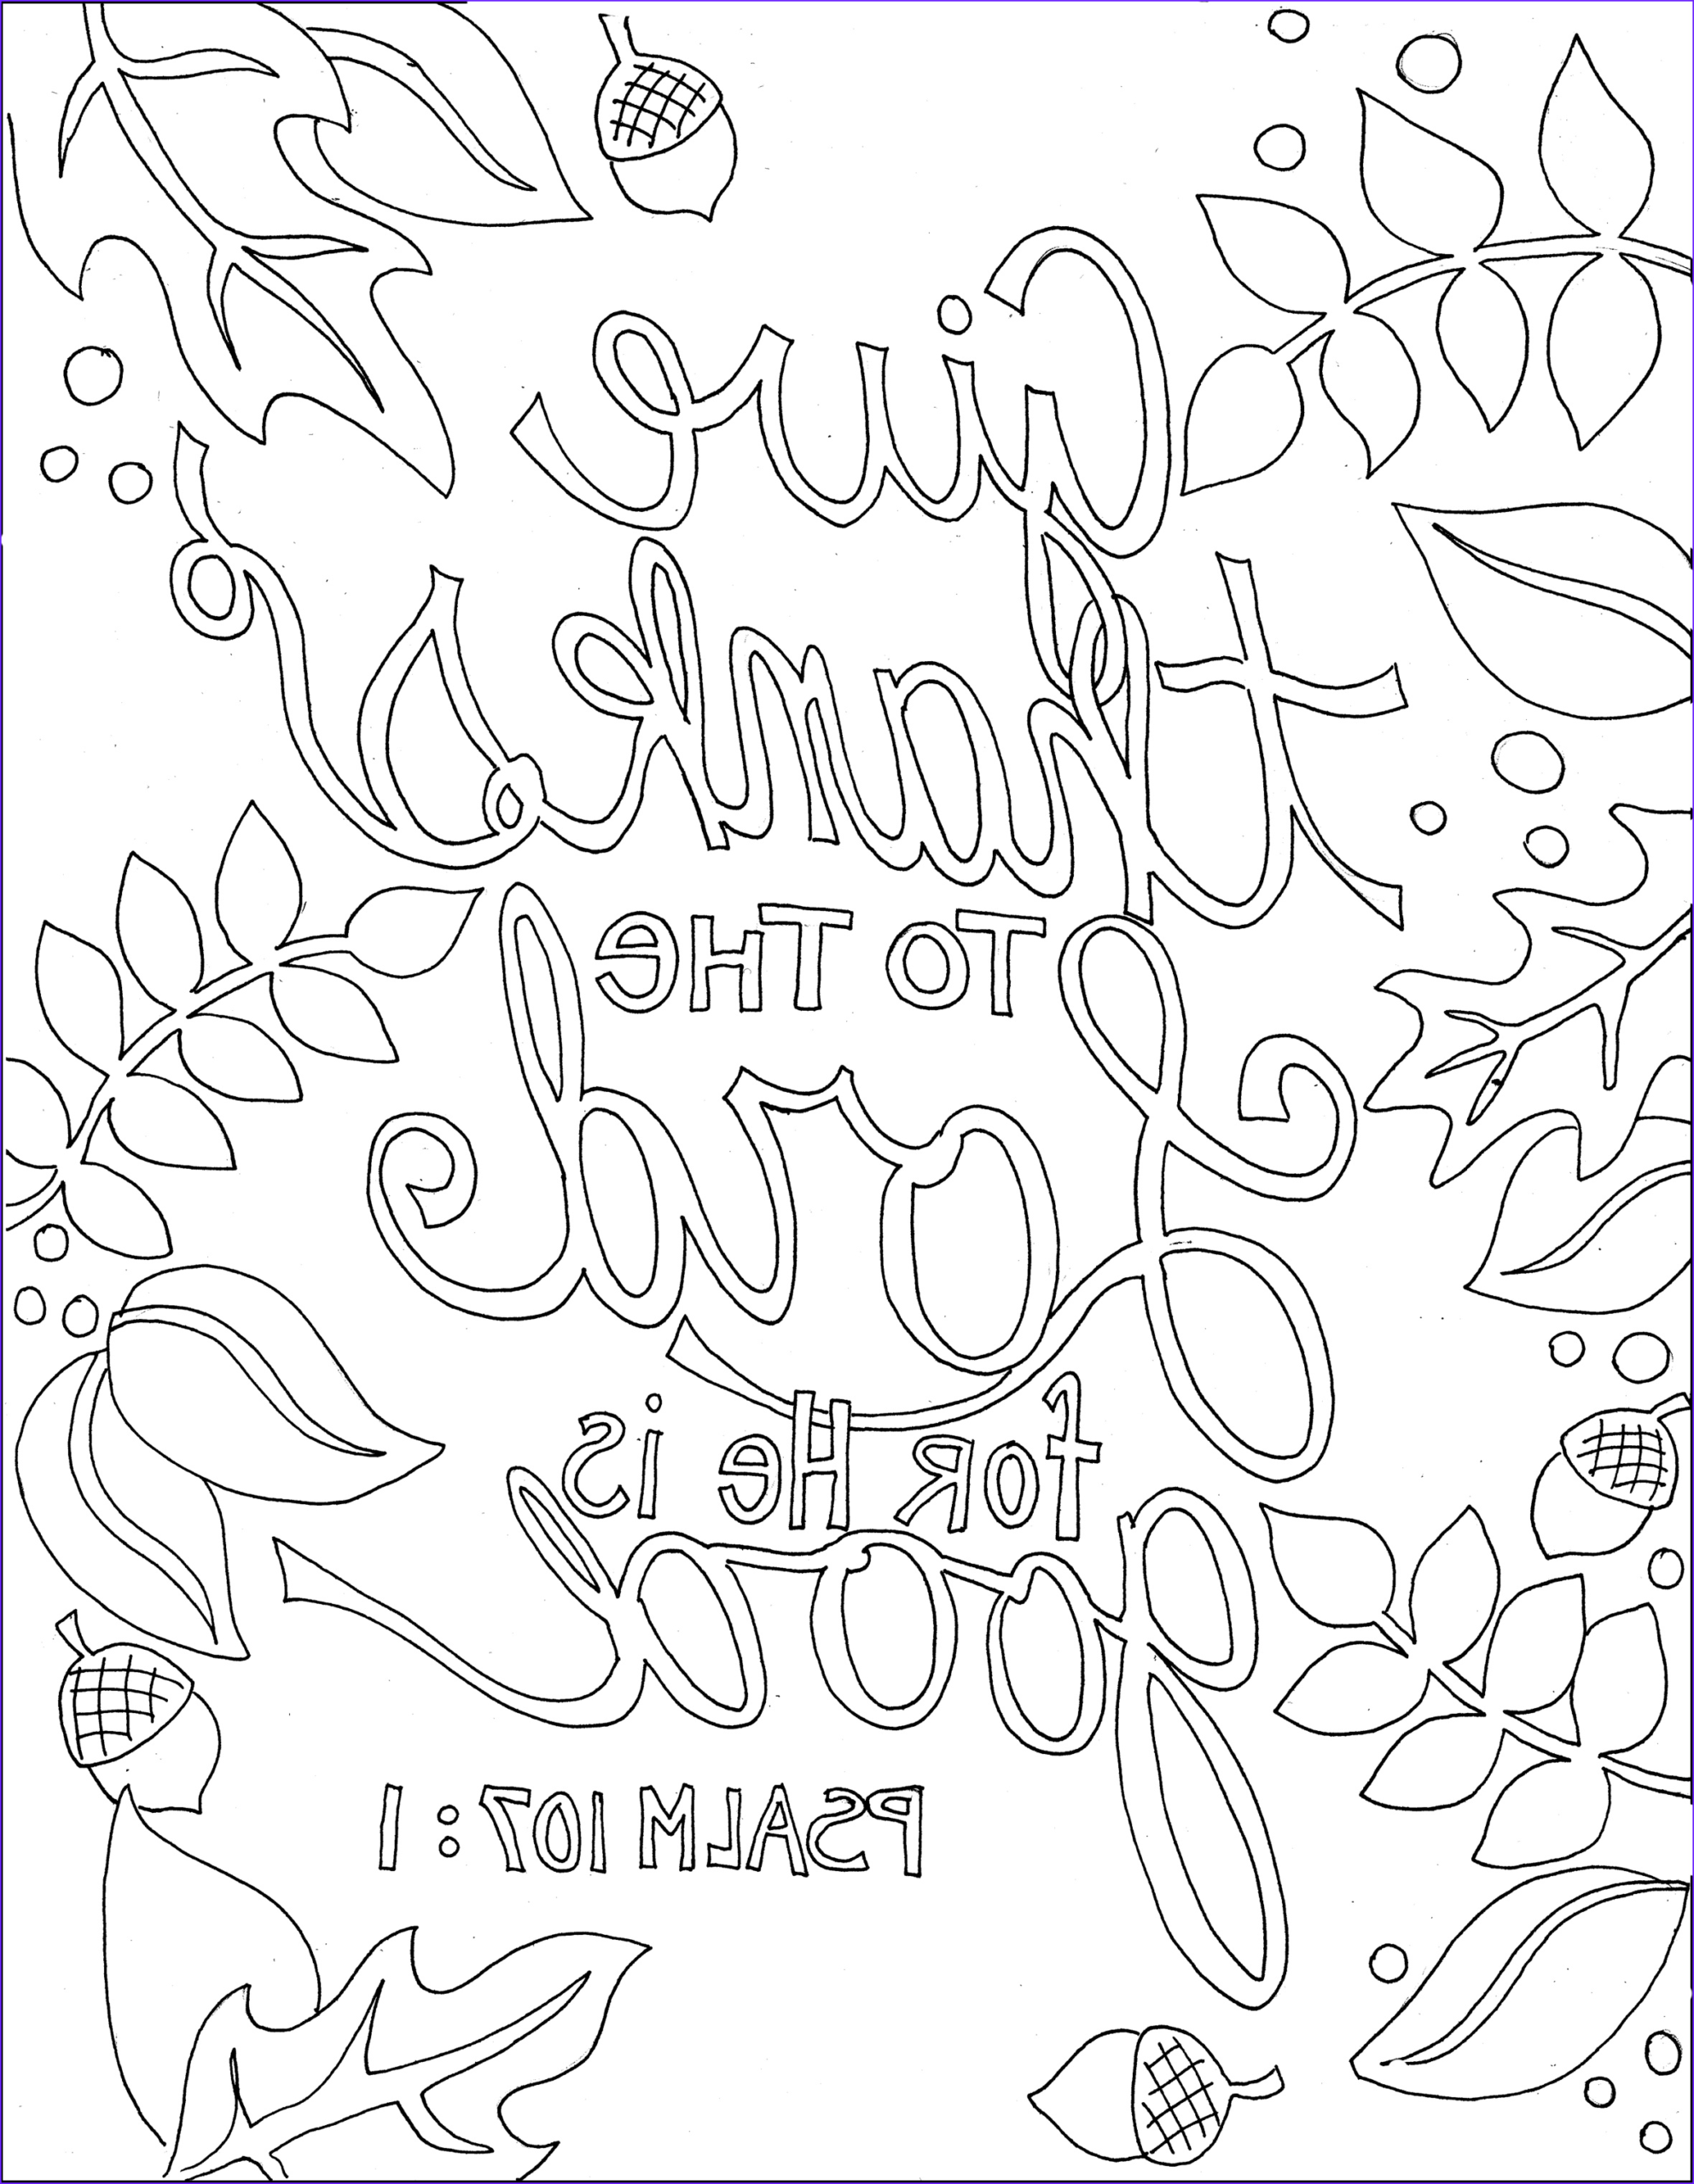 Free Printable Christian Coloring Pages Awesome Image 50 Adult Bible Coloring Pages 17 Best Ideas About